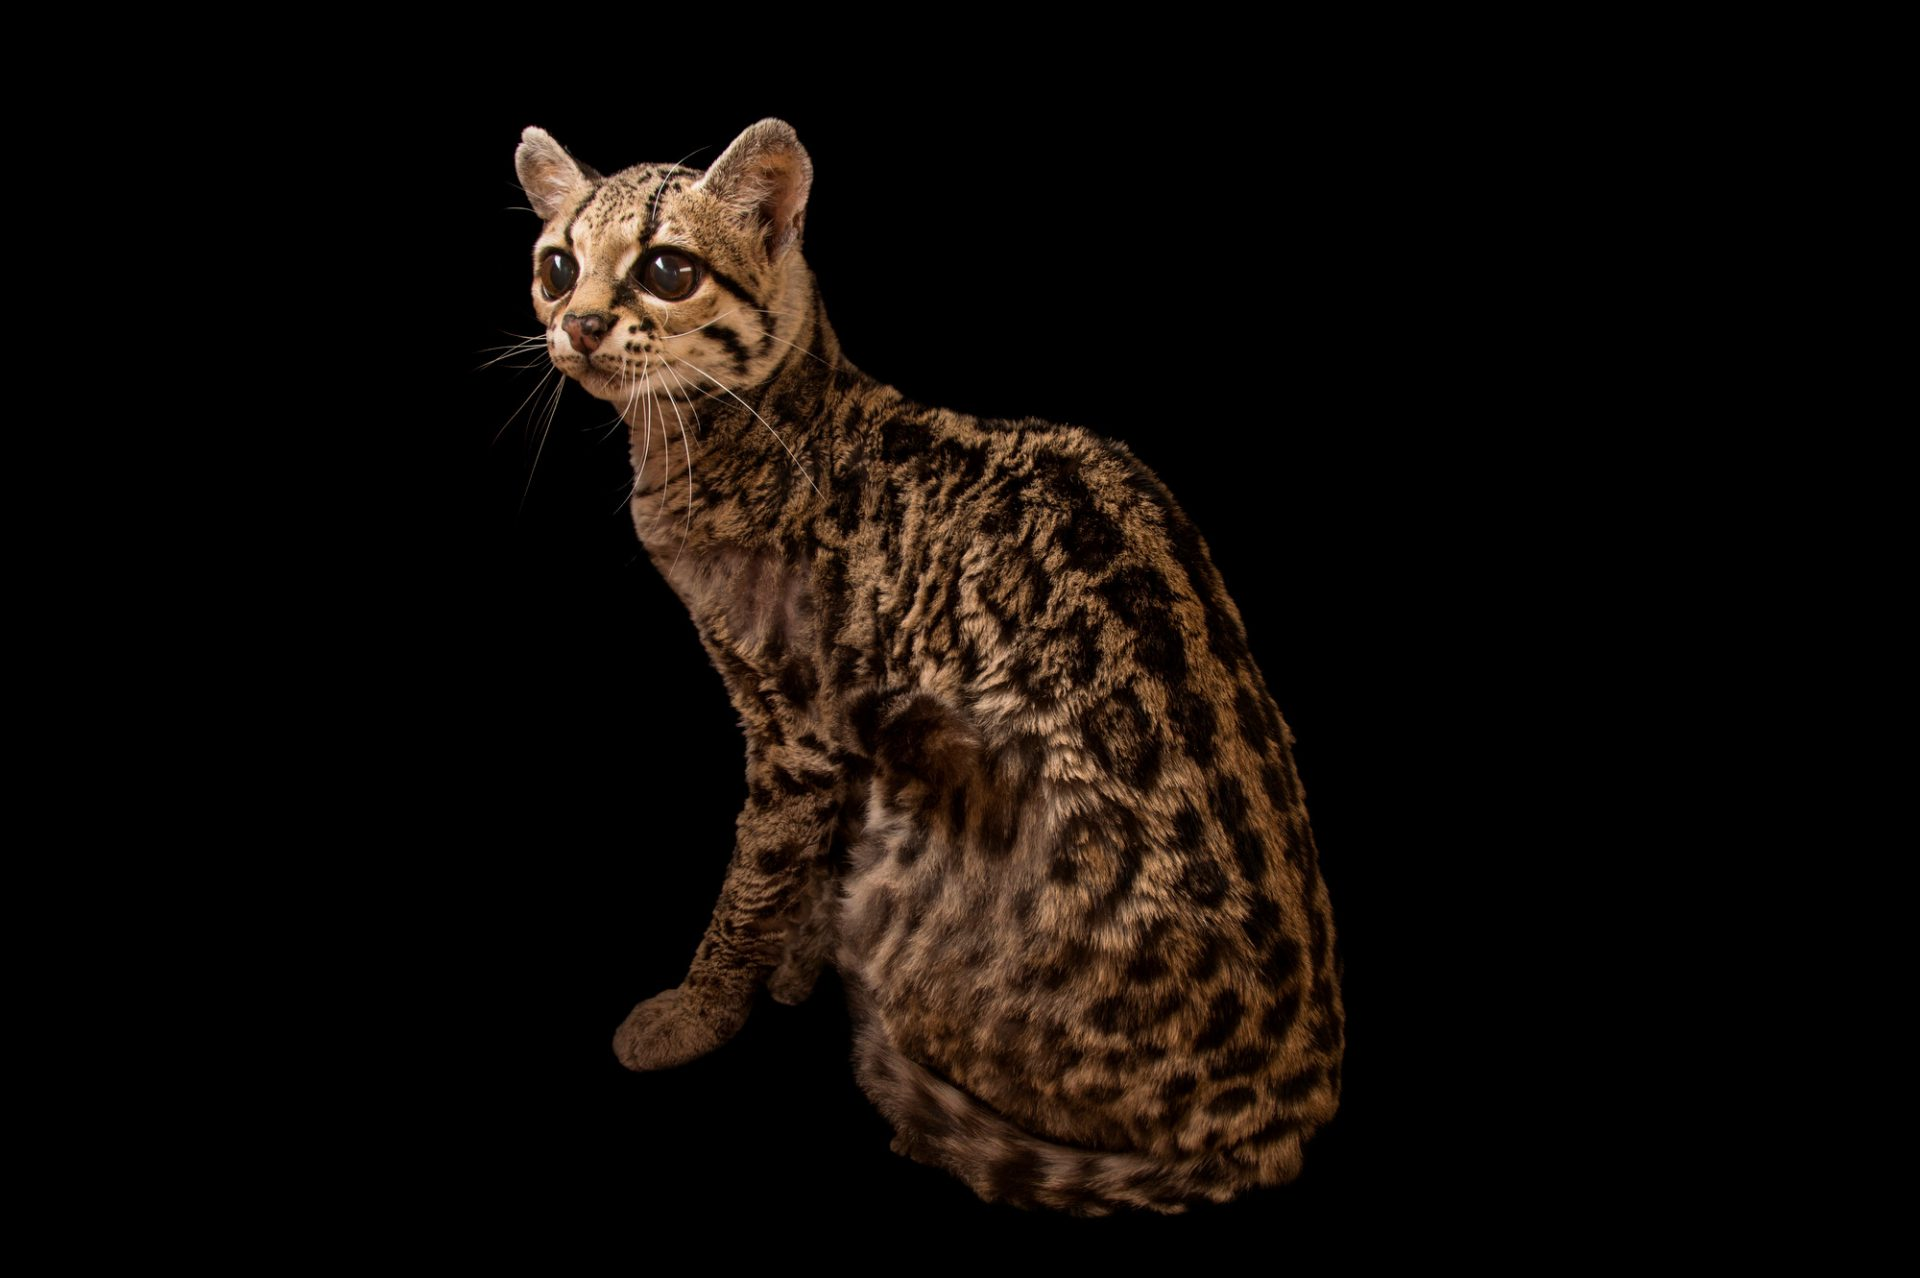 A federally endangered margay (Leopardus wiedii wiedii) named Carlotta at the Cincinnati Zoo. She's a $30,000 cat because that's what the court costs and fines added up to for the man who she was confiscated from in Indiana. She was most likely born in the wild and is nearing the end of her life span at the age of 19.